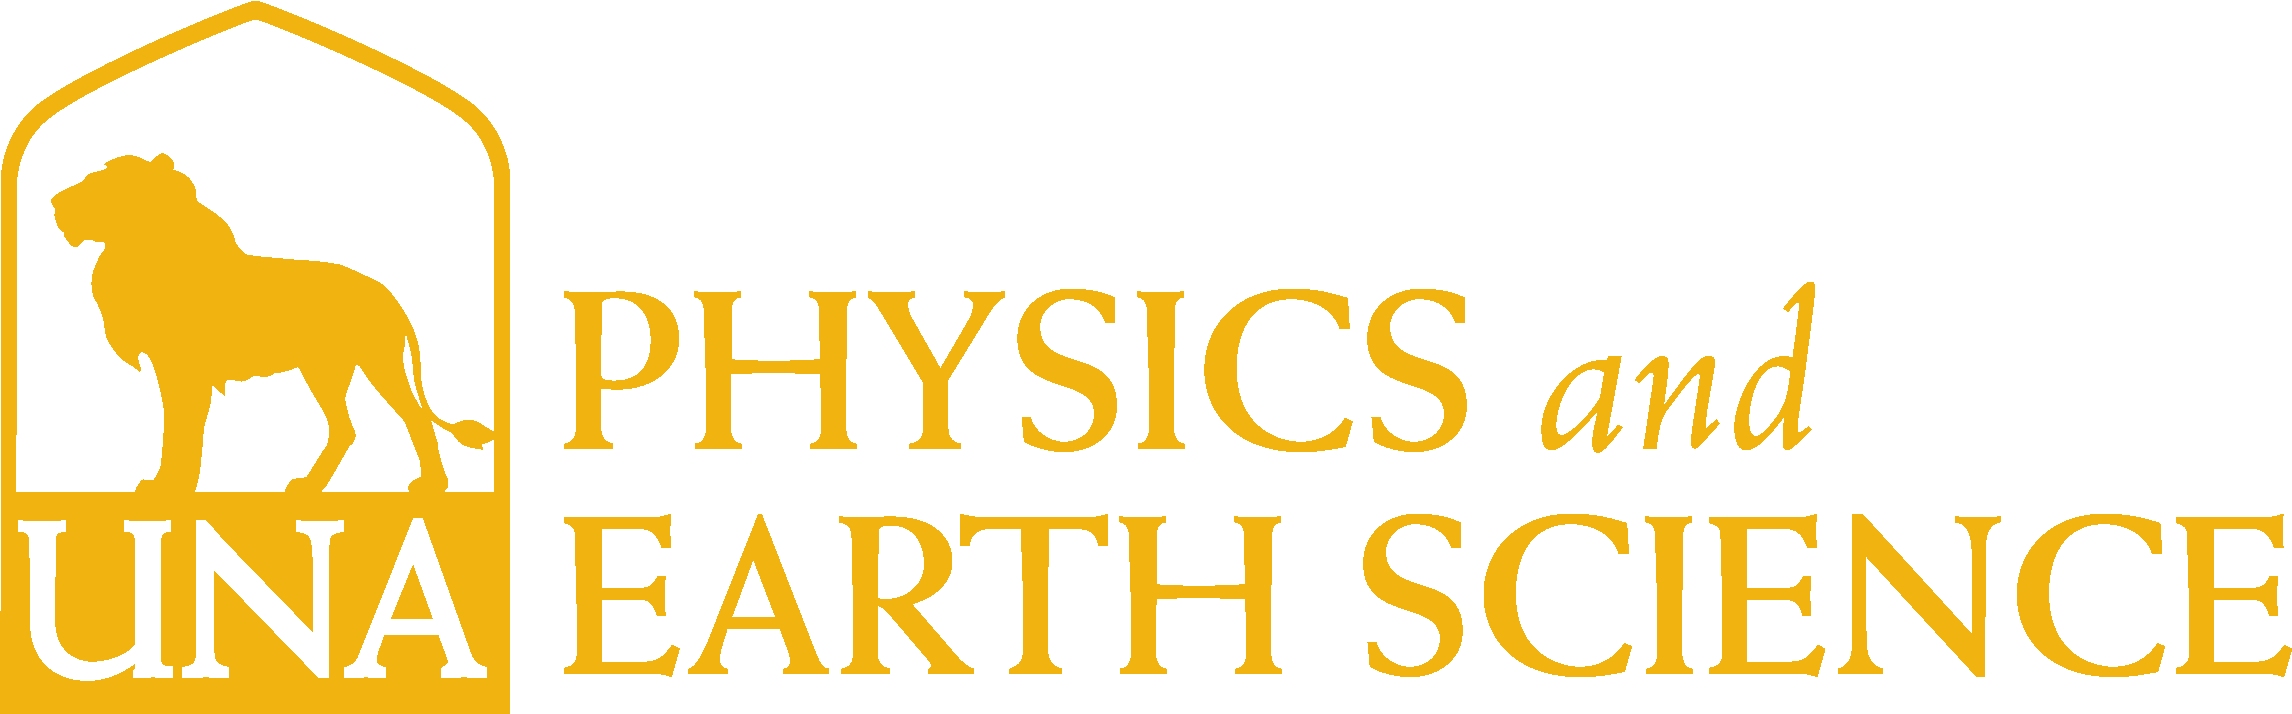 College of Arts and Sciences - Physics and Earth Science Logo - Gold - Version 3